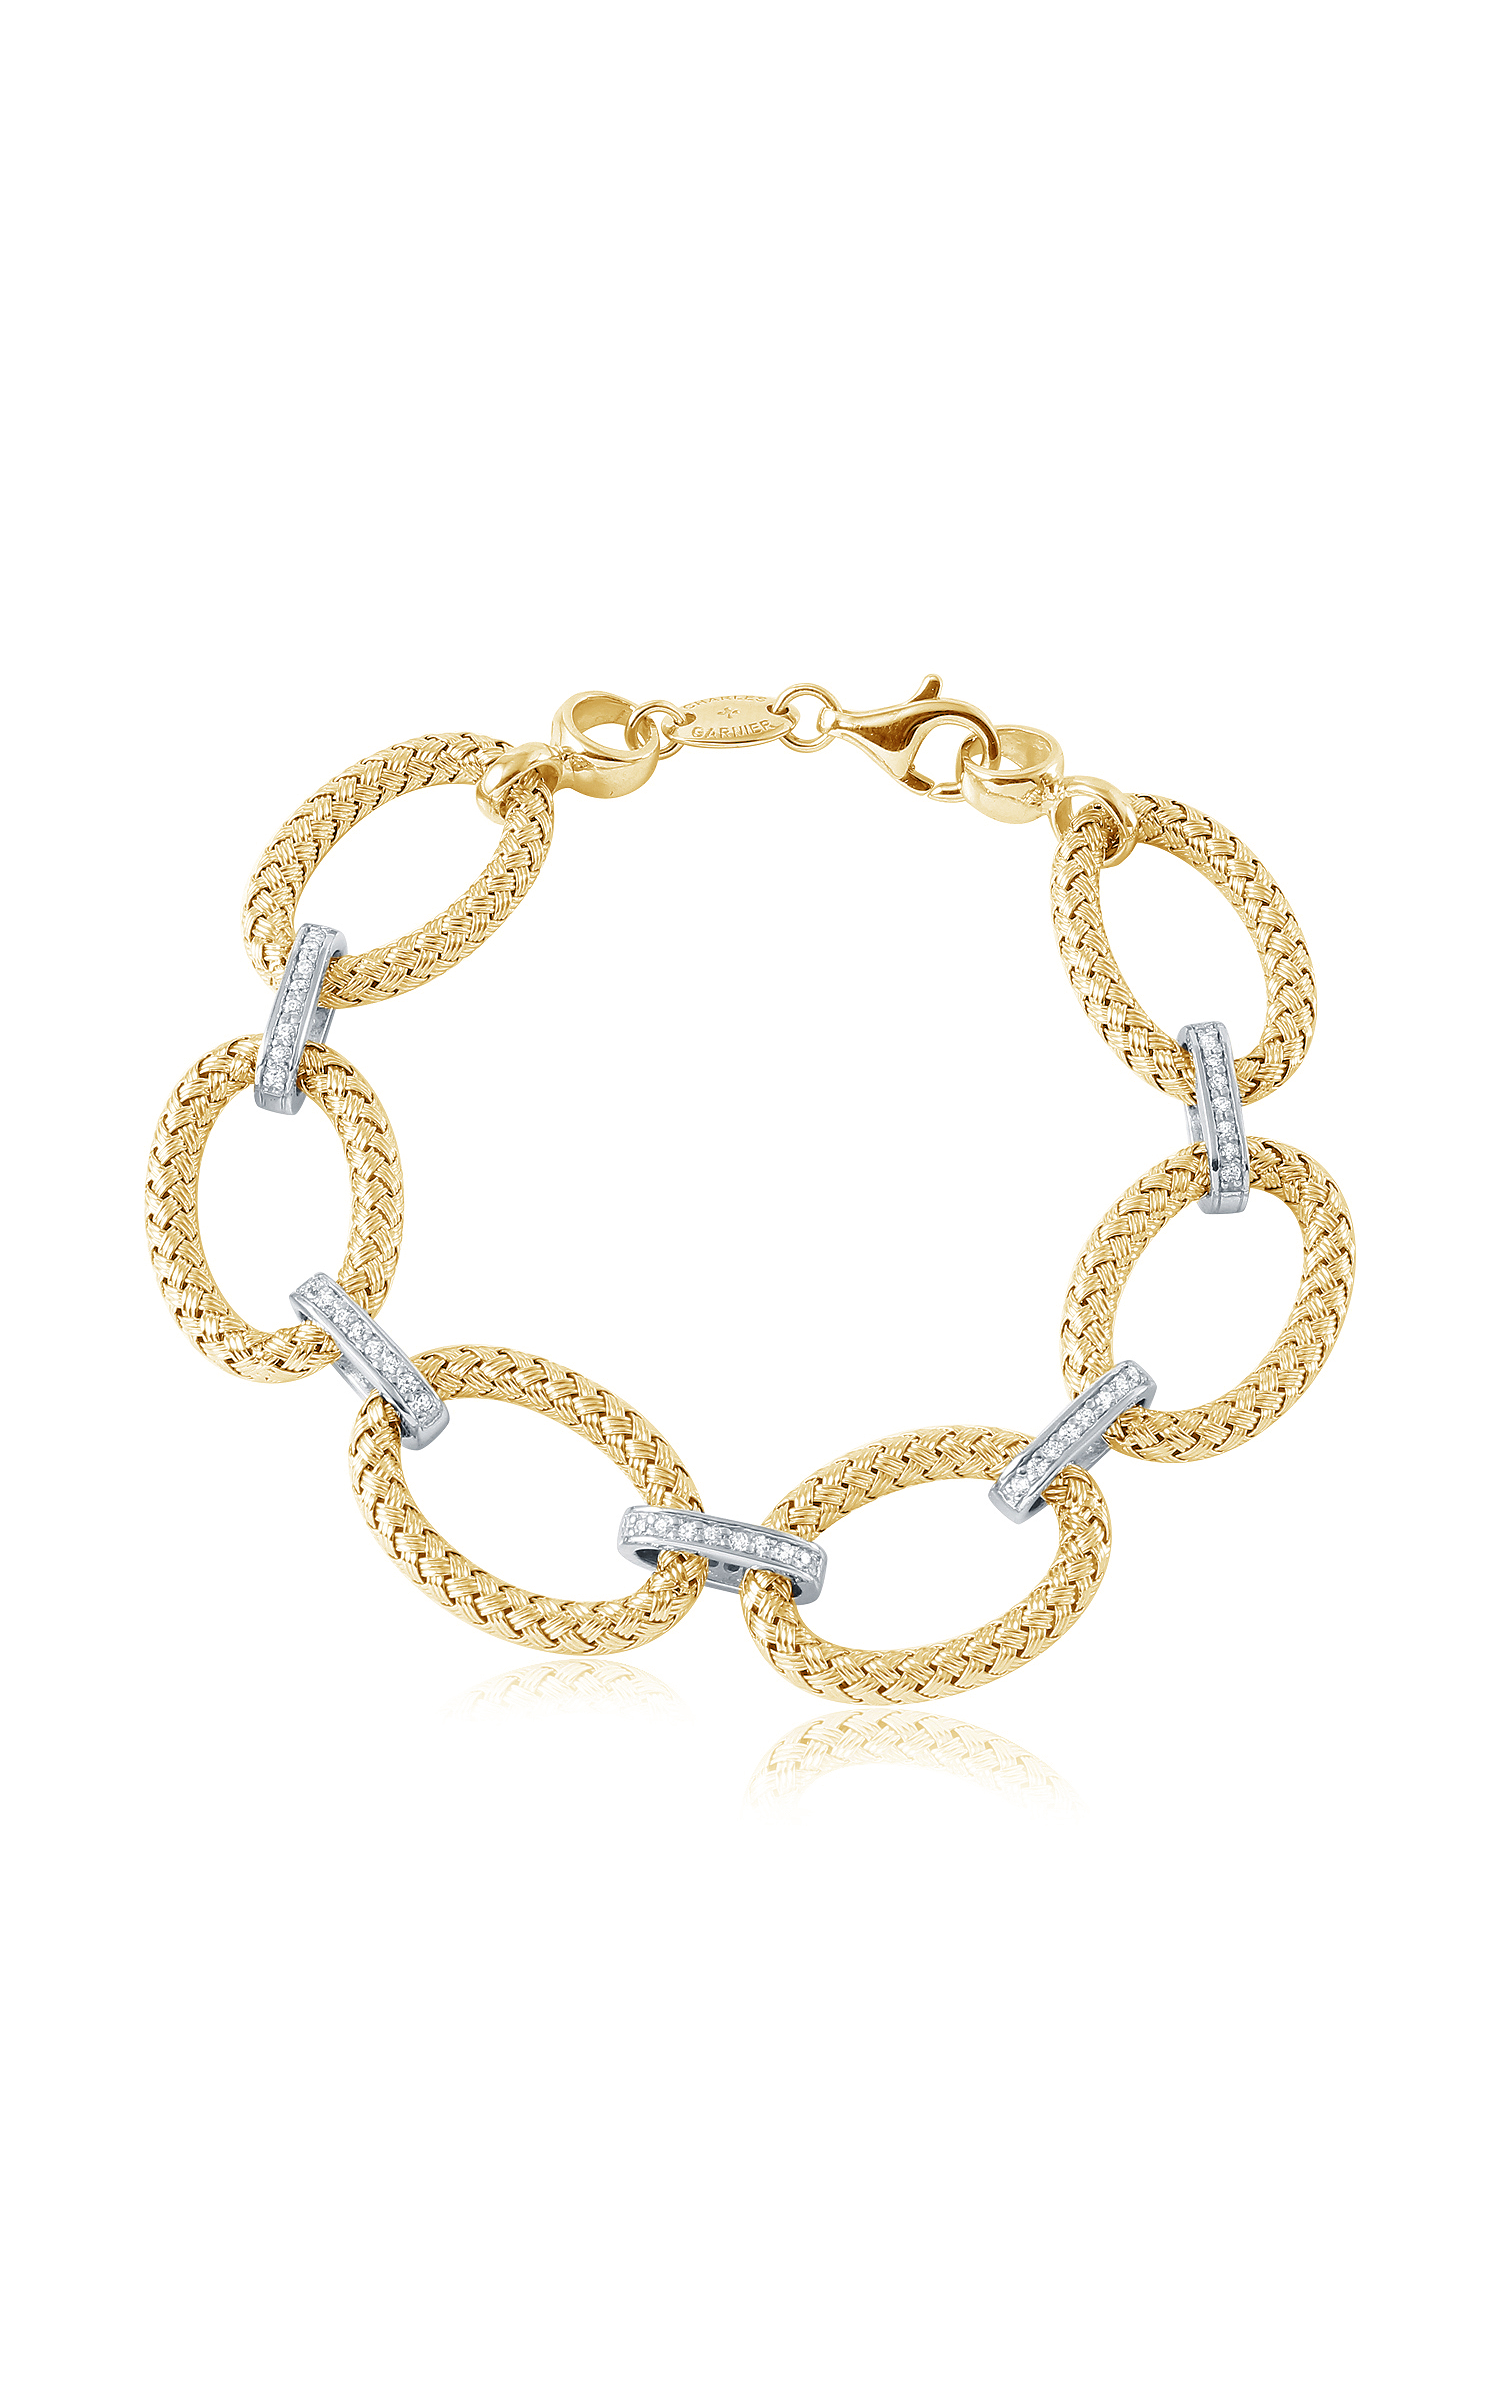 Charles Garnier Bracelets Bracelet Paolo Collection MLD8158YWZ80 product image